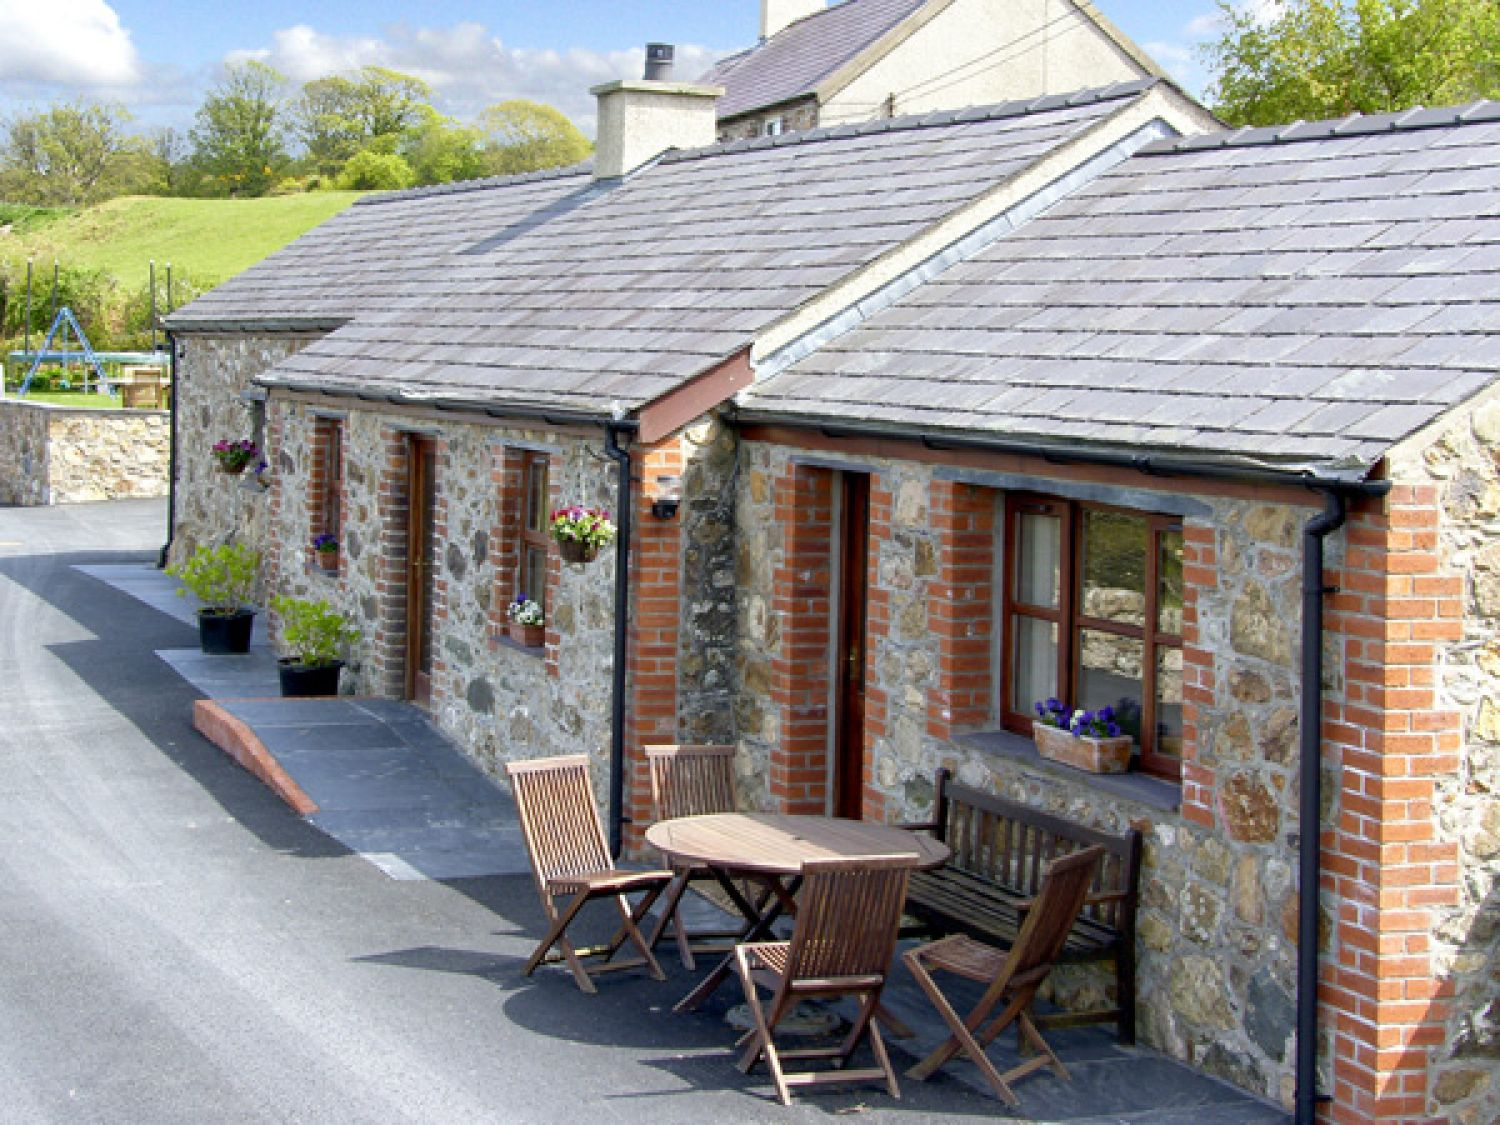 Penrallt Cottage - North Wales - 1499 - photo 1